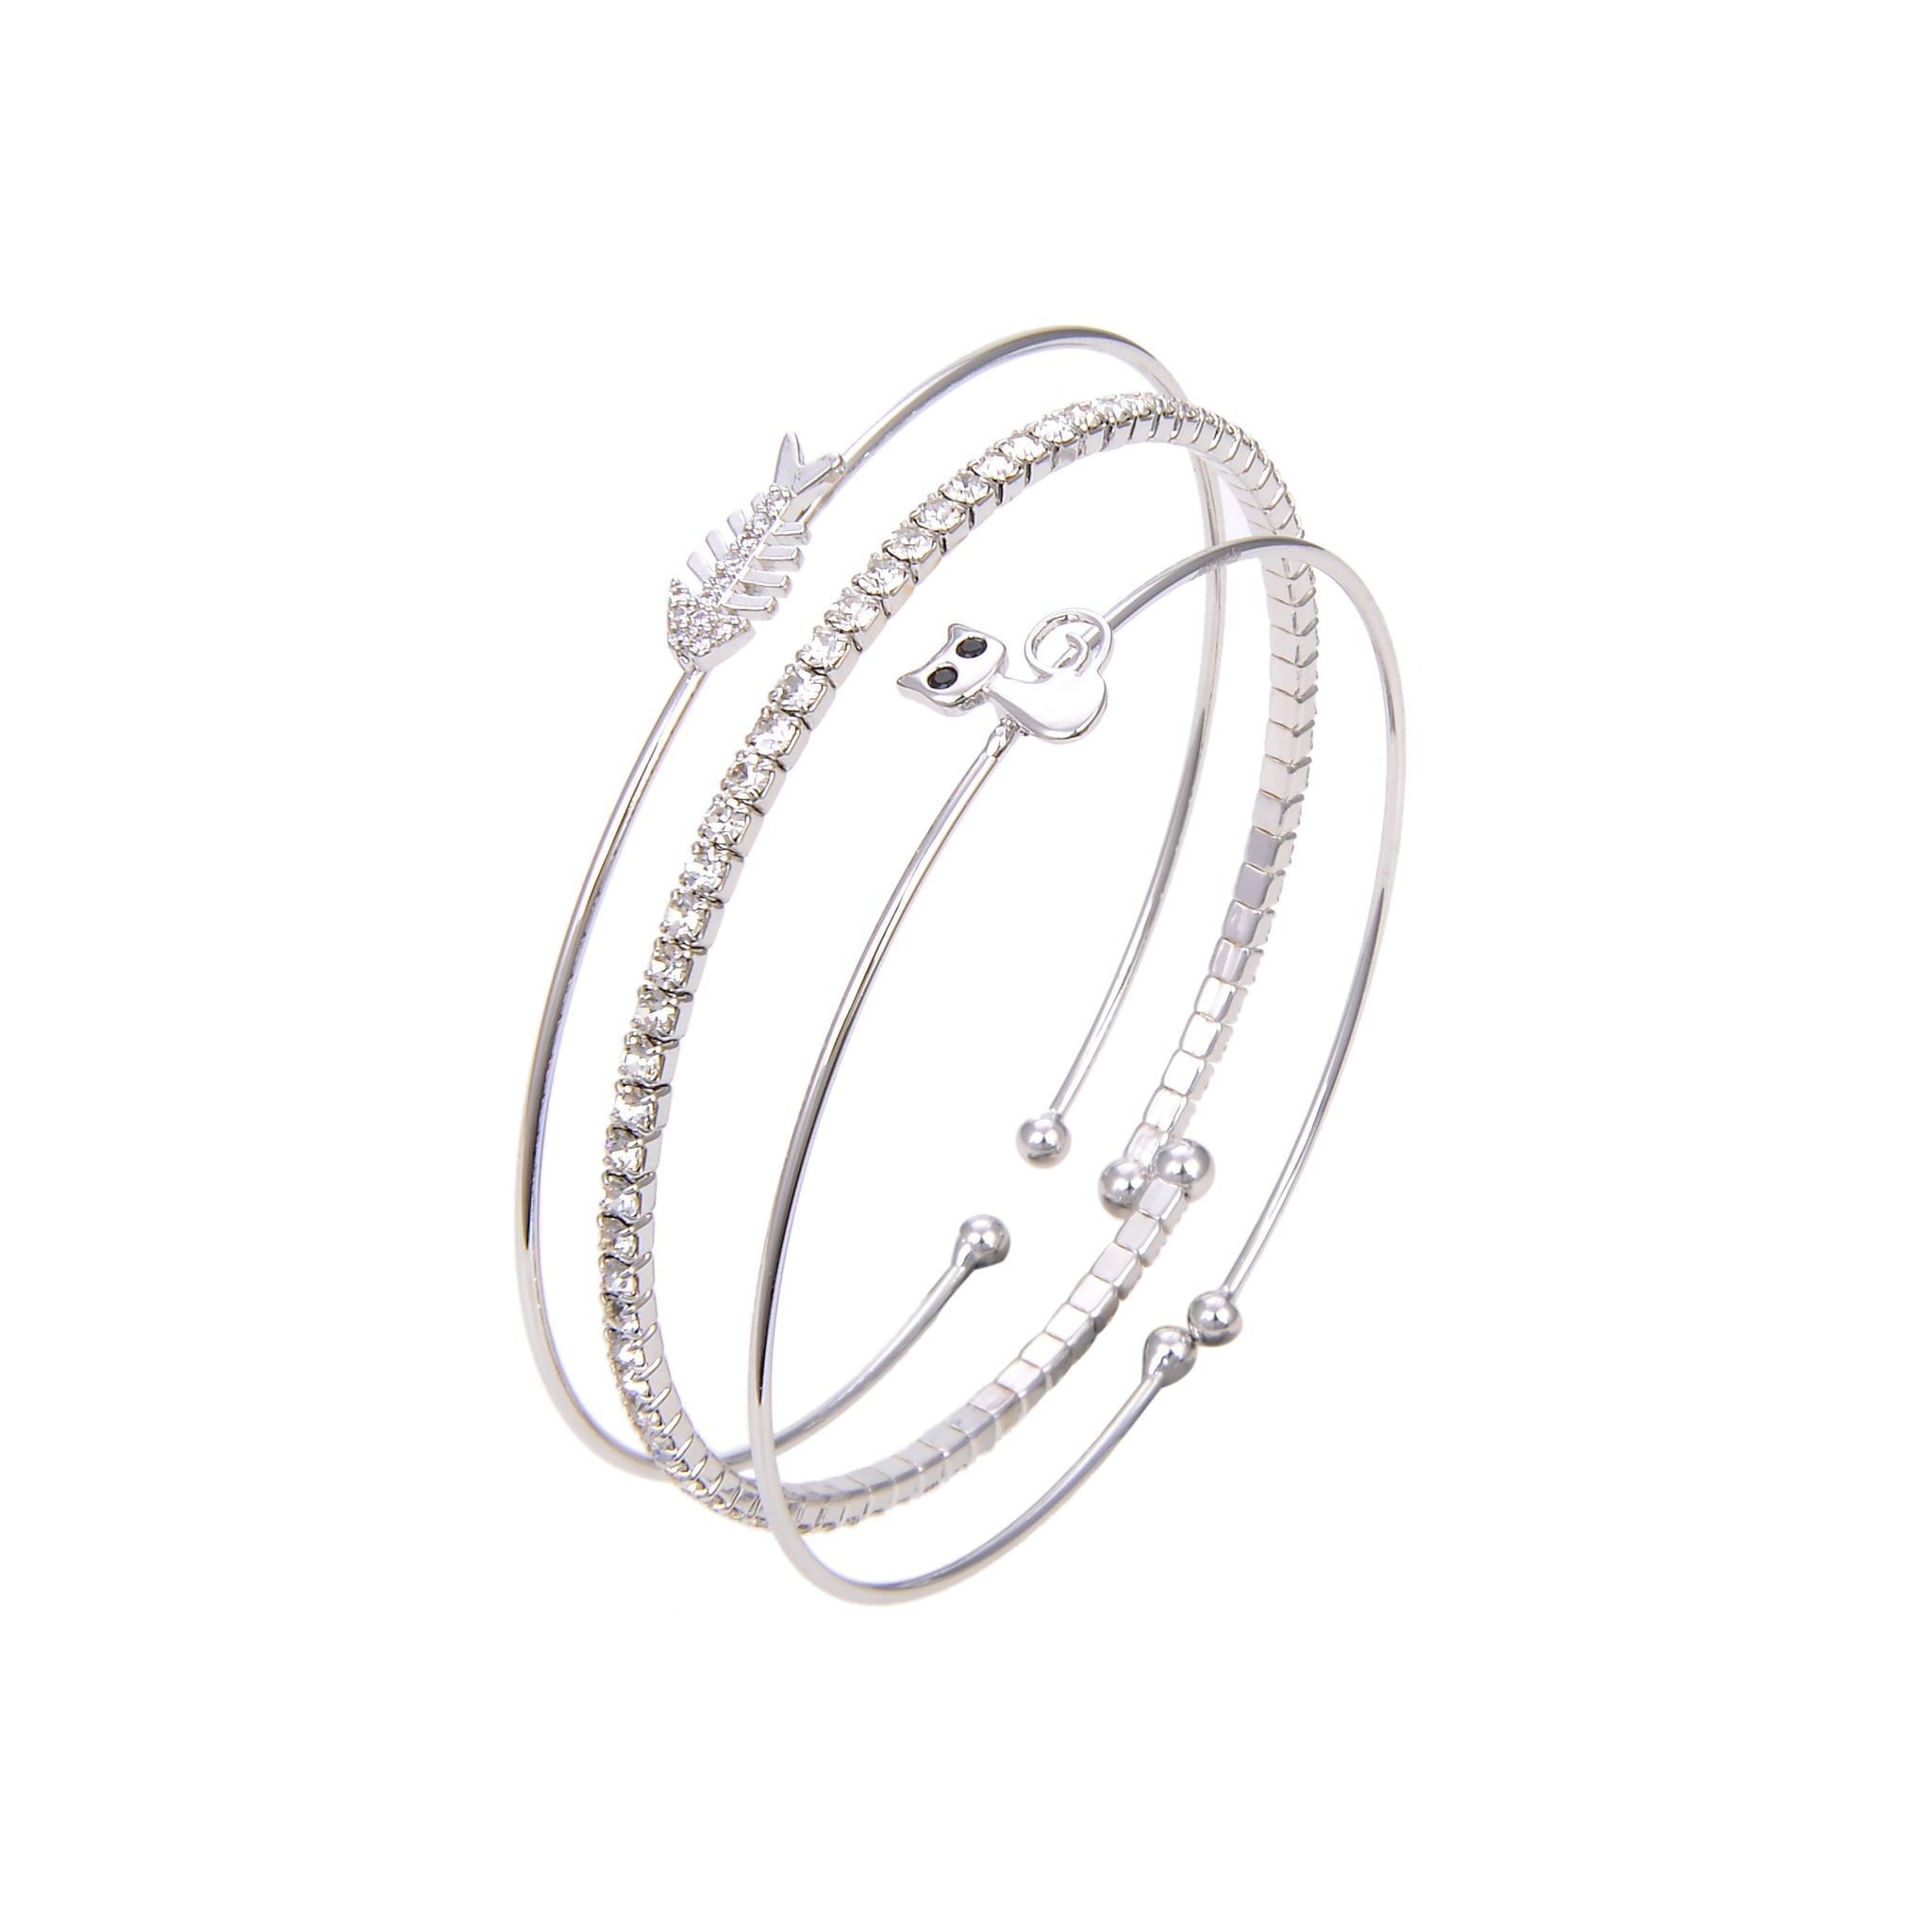 Silver Plated CZ Cubic Zirconia Bangle Bracelet, Round Shape Fish and Cat Print Bangle Bracelet